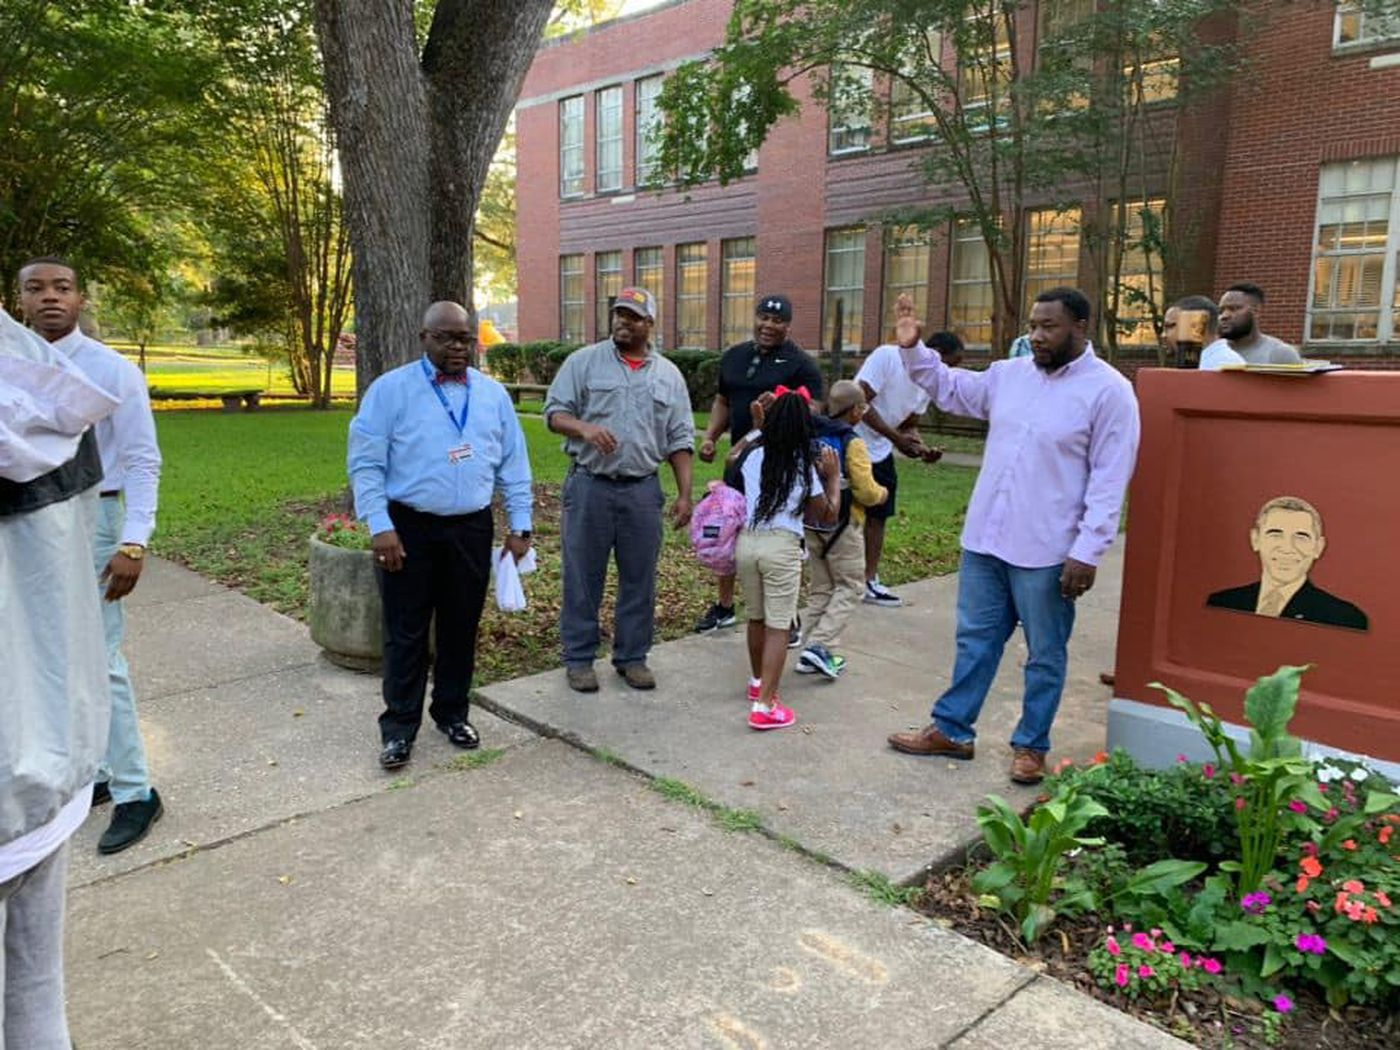 Dads line up to greet students on first day at Jackson